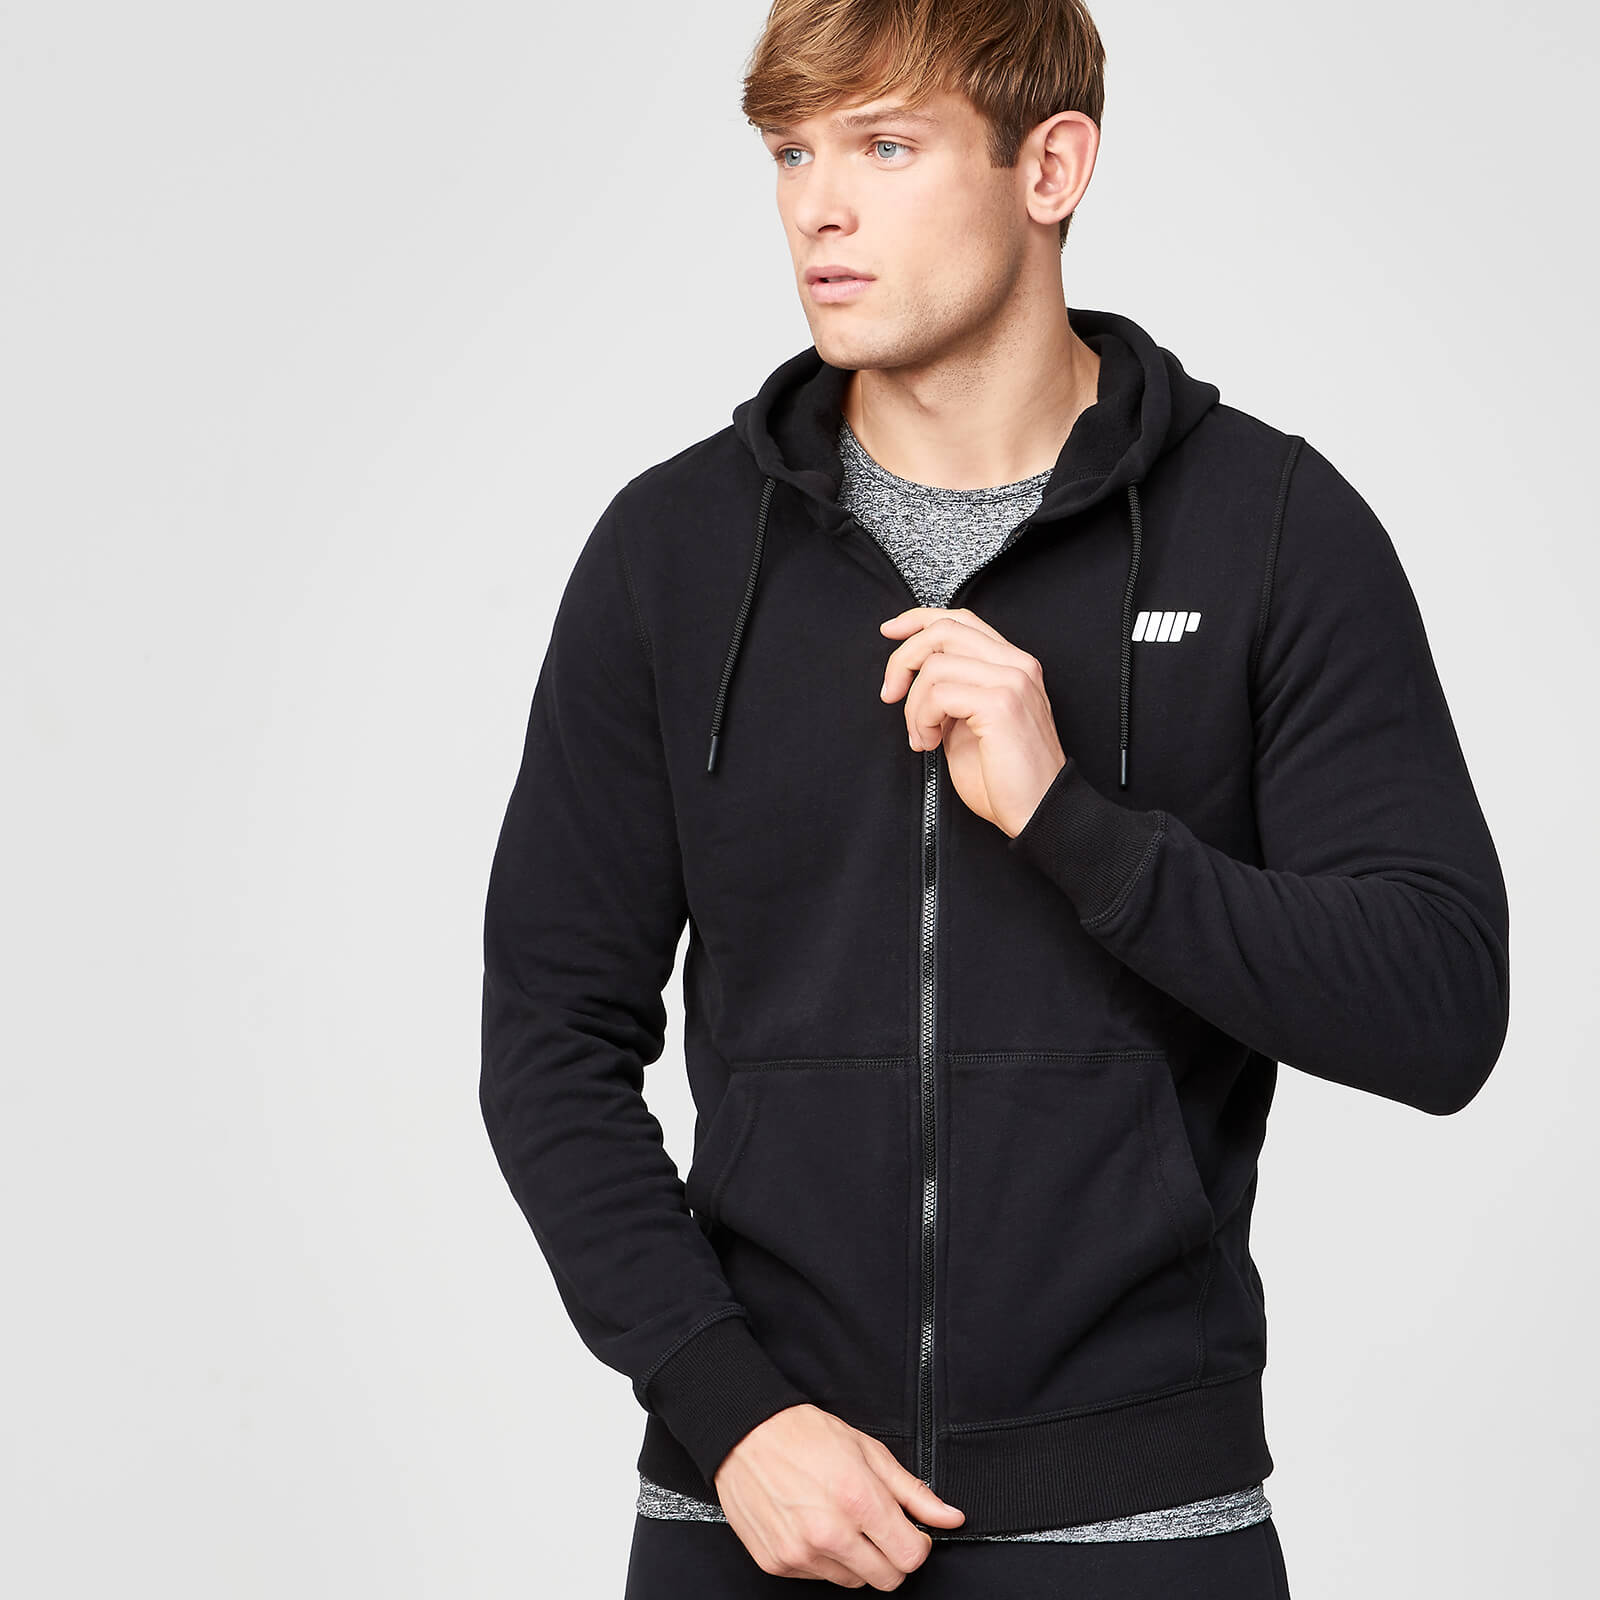 Tru-Fit Zip Up Hoodie - Black - XS